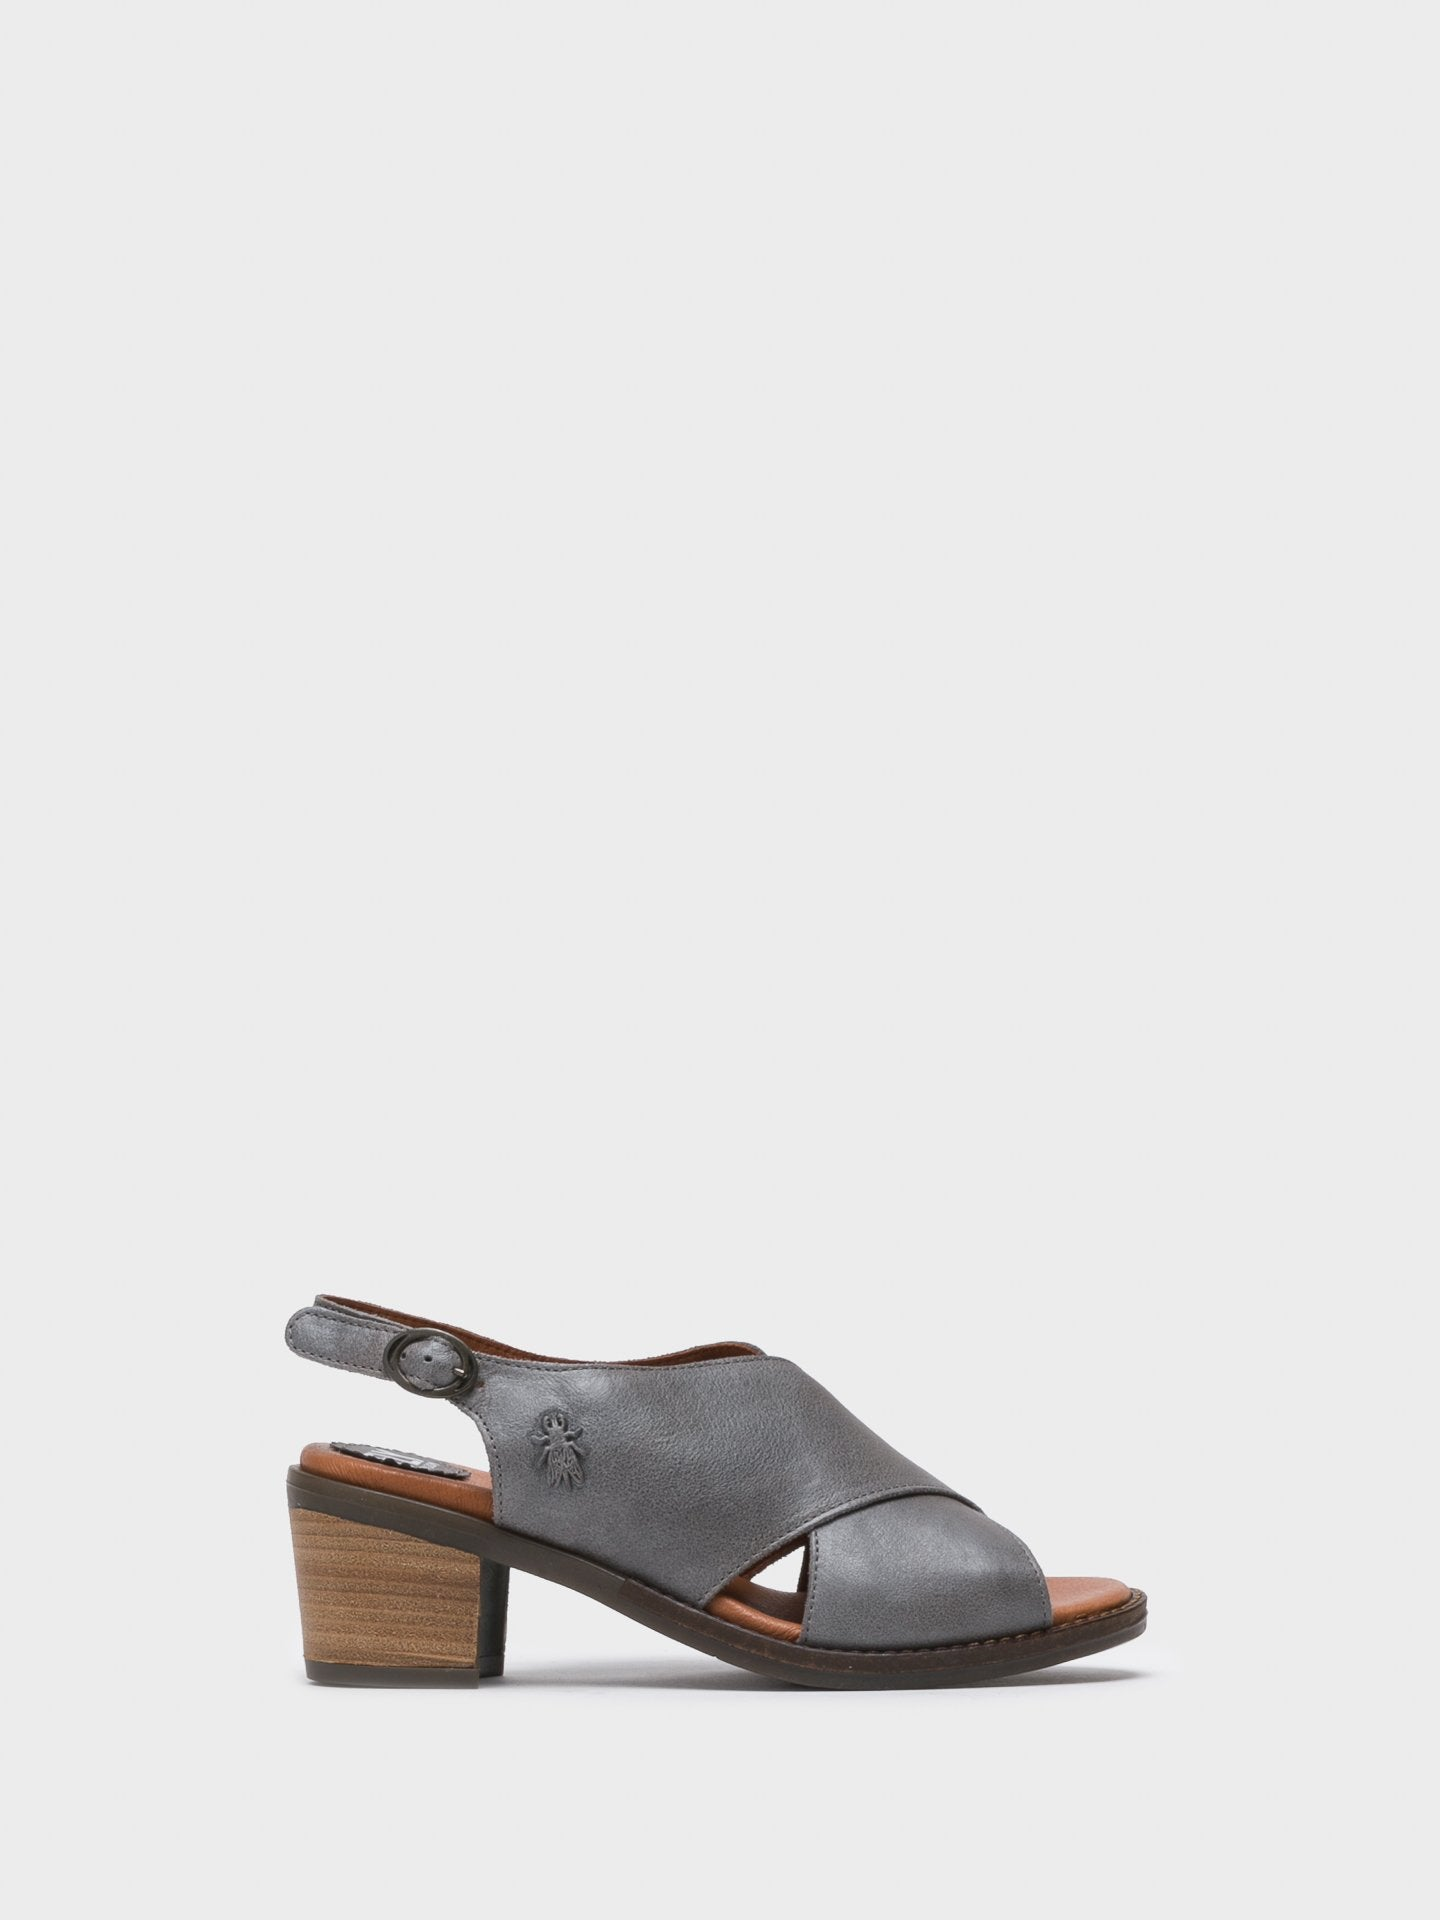 Fly London Gray Sling-Back Sandals